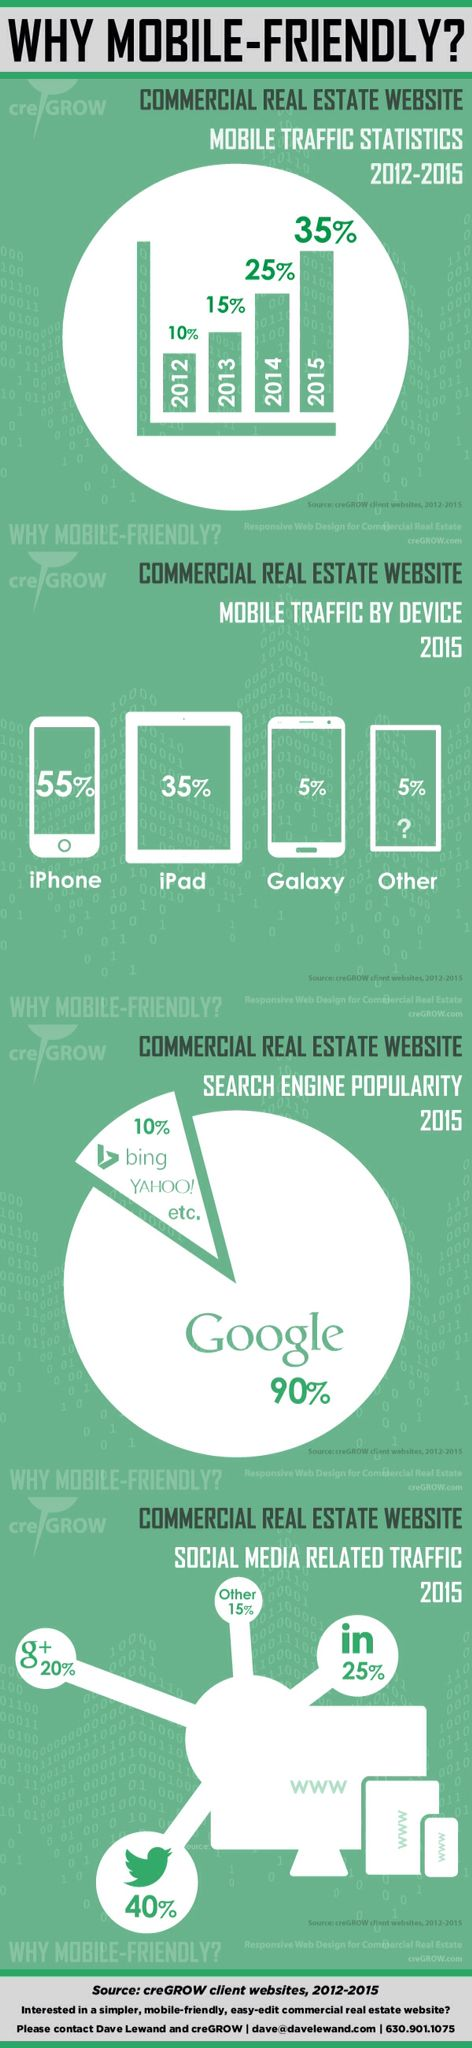 "Infographic: ""Why Mobile-Friendly for Commercial Real Estate?"" - creGROW Guest Post by Dave Lewand on DukeLong.com 